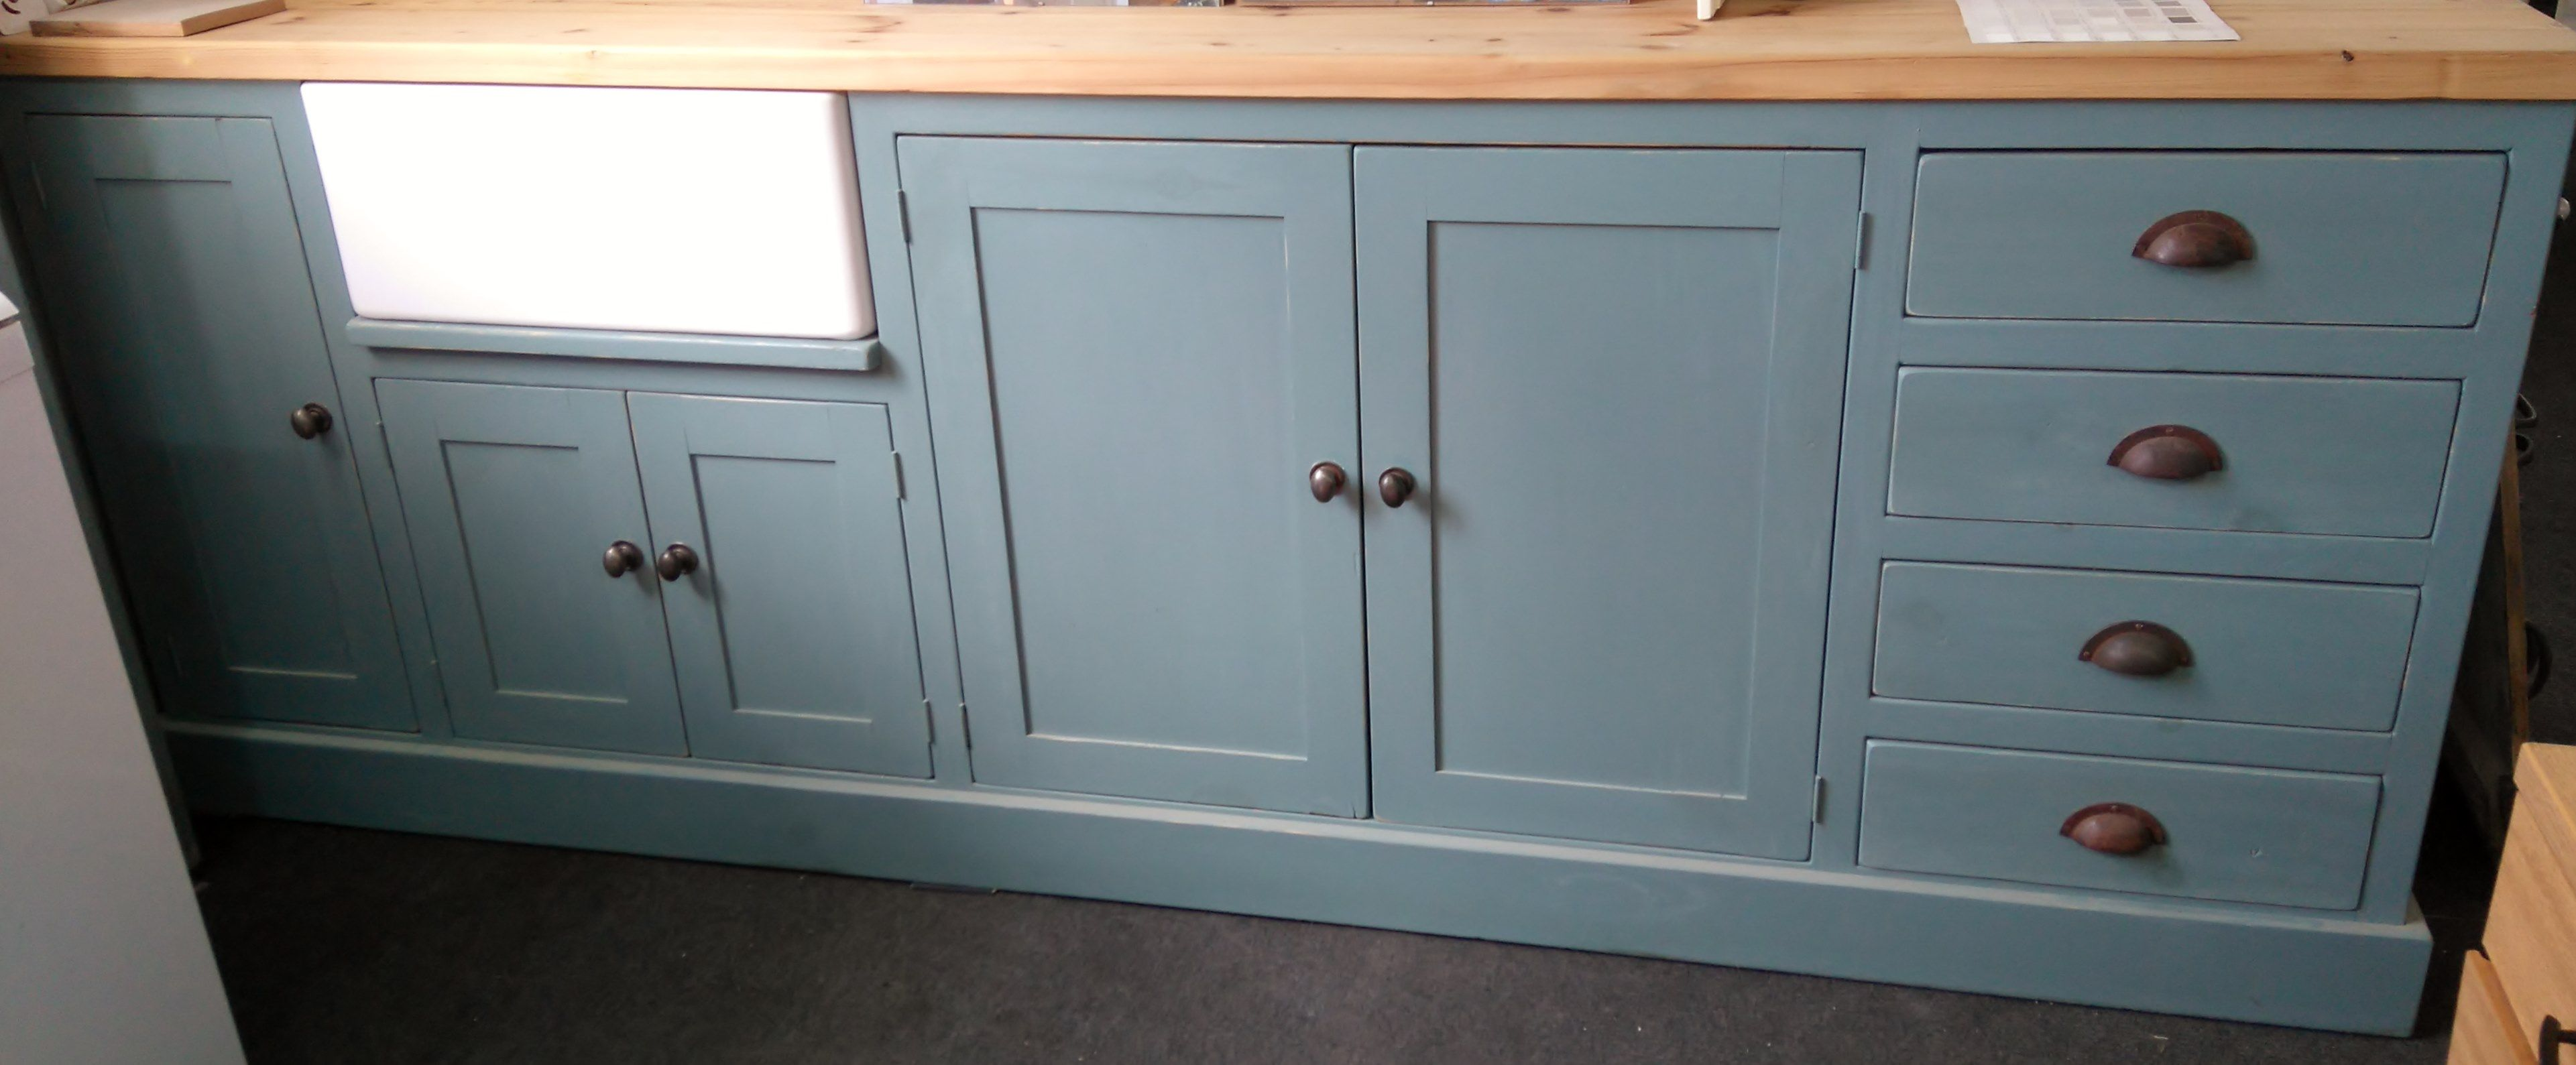 Best 8Ft Kitchen Sink Run Units Painted In Farrow Ball Oval 400 x 300